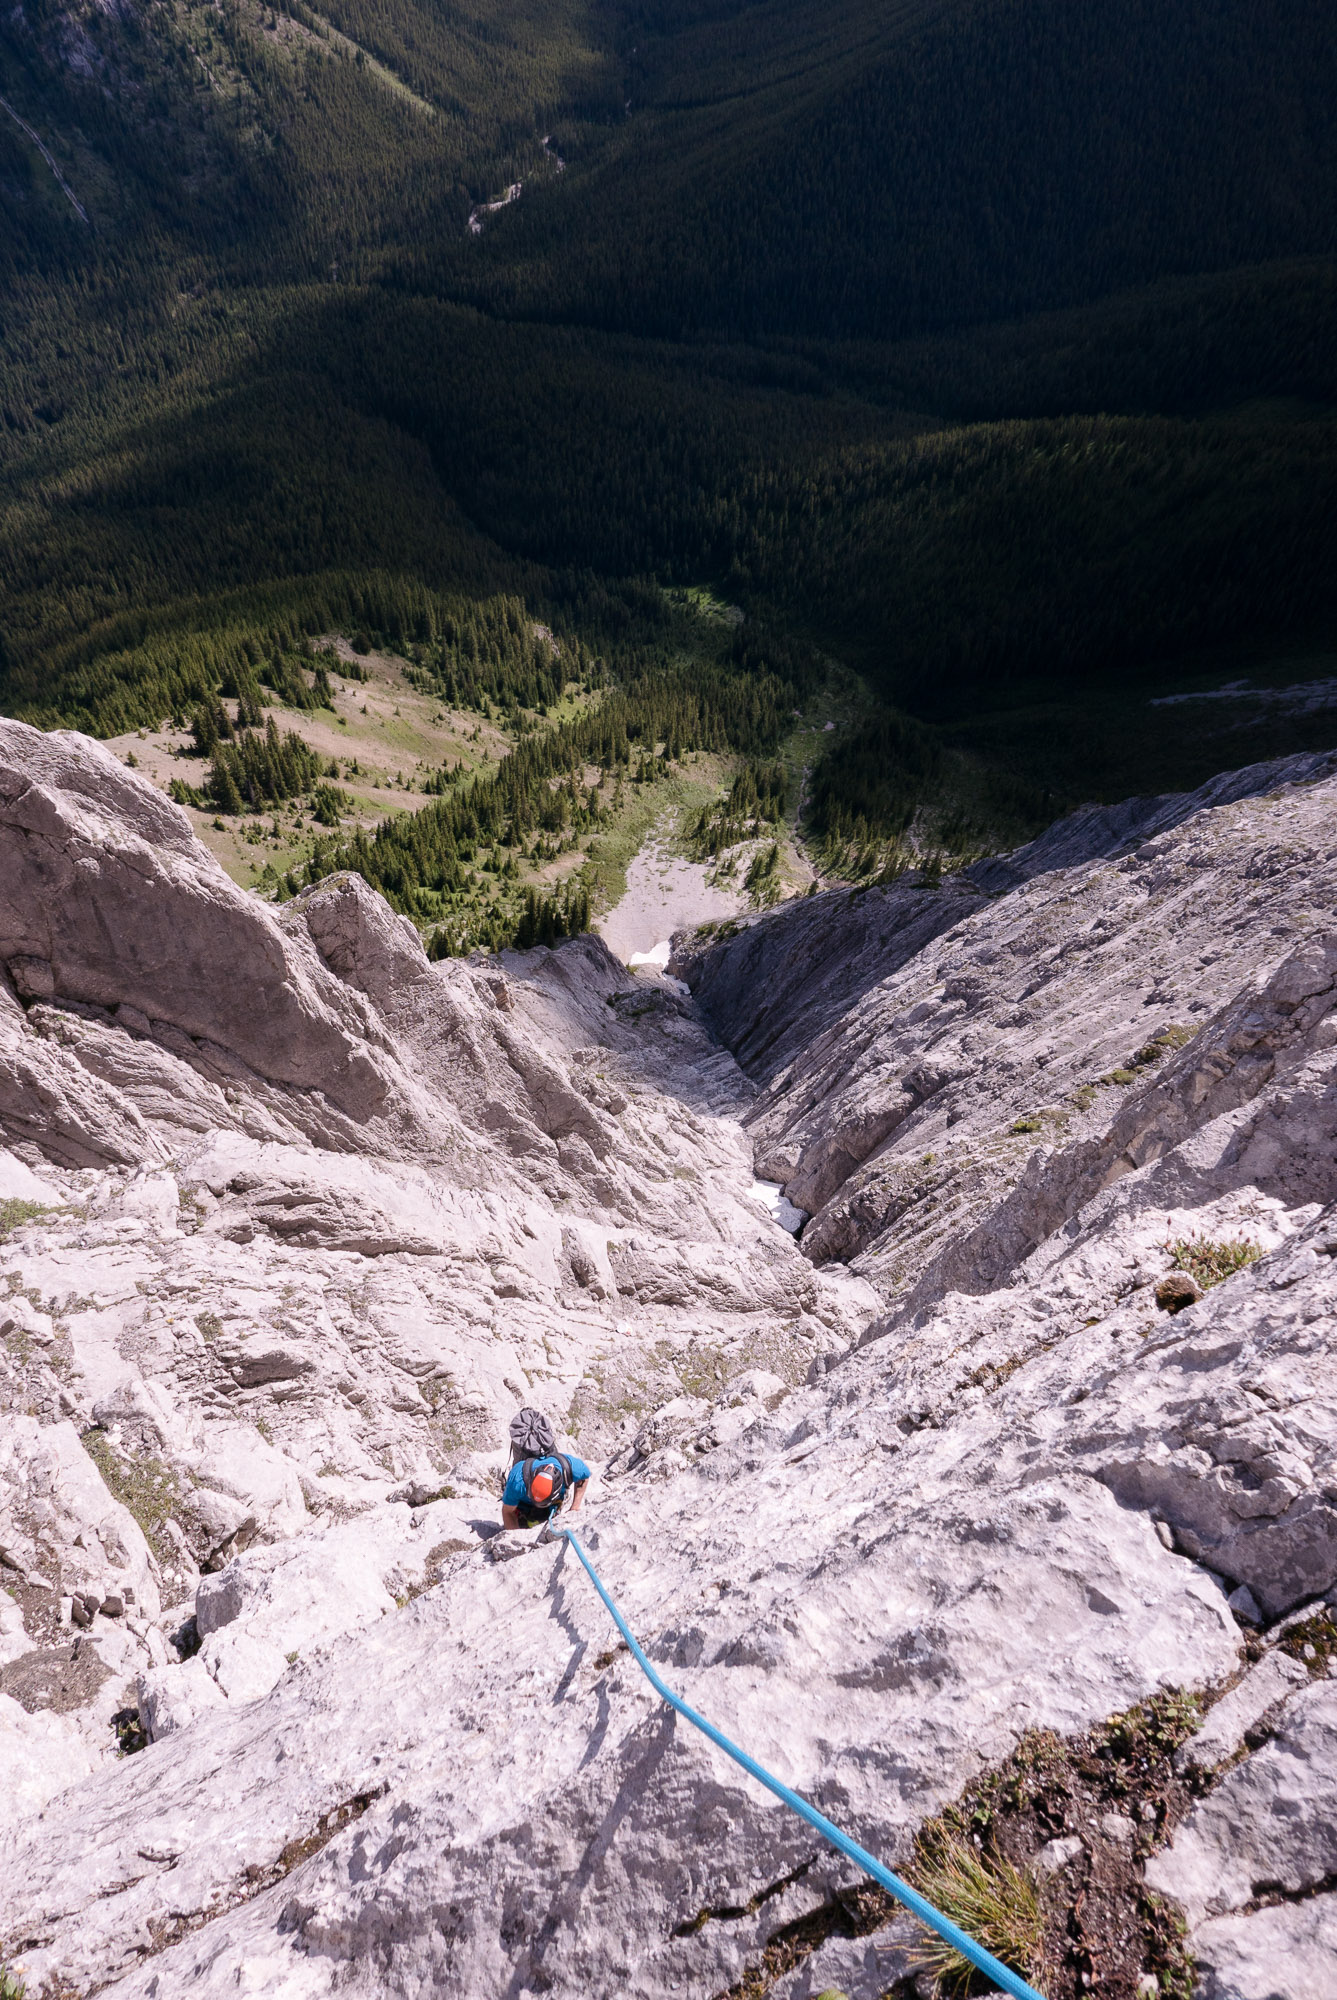 Mike following the last bit of climbing before the Diamond headwall.